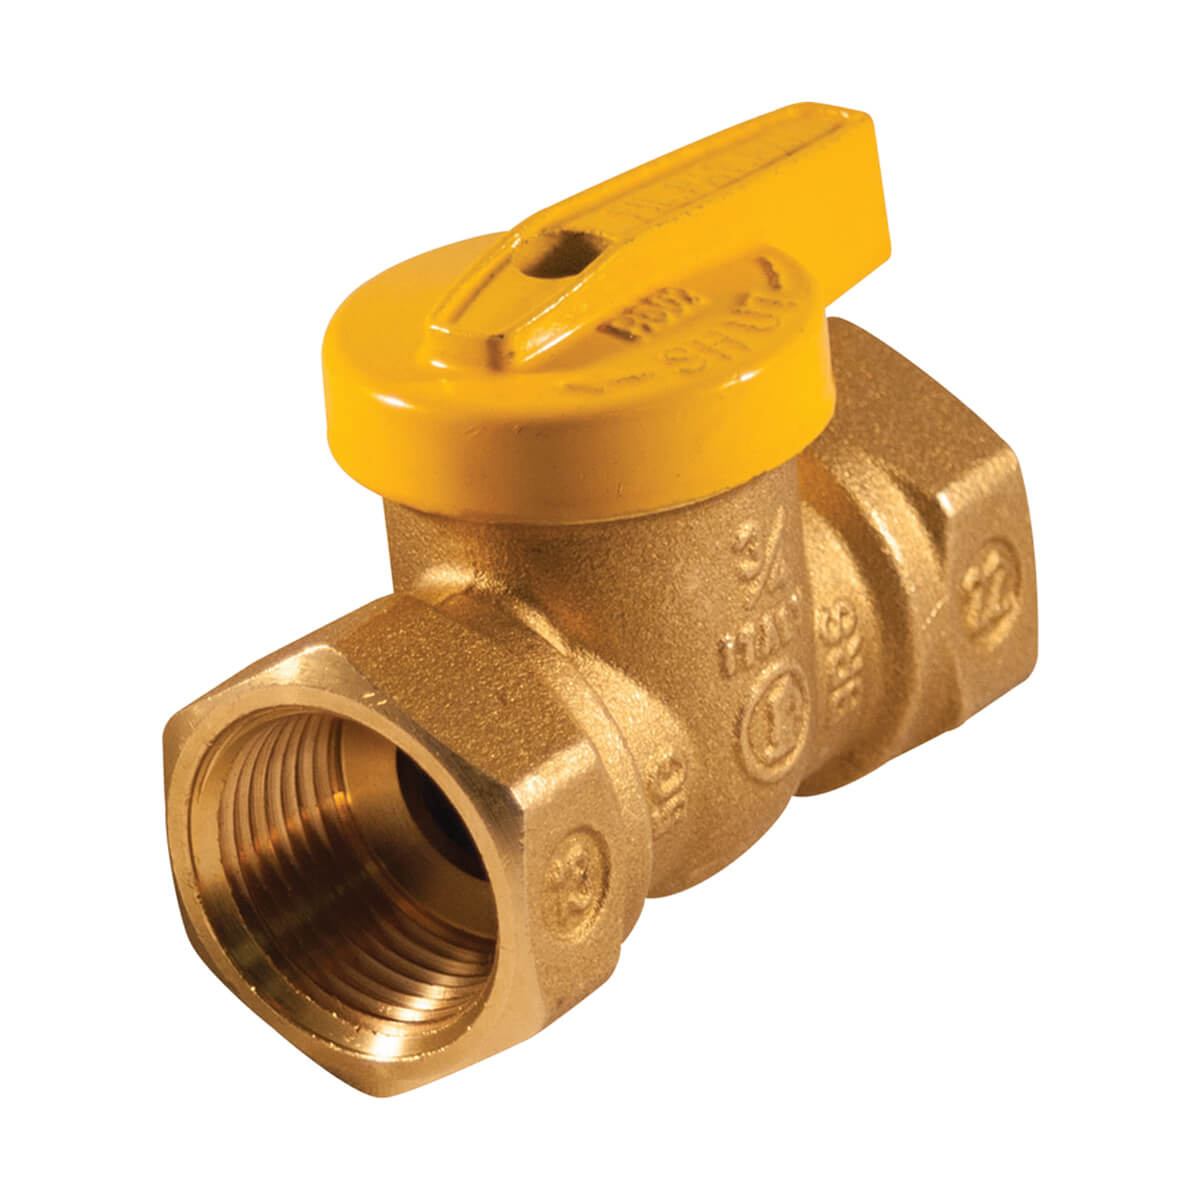 Gas Ball Valve - One-Piece Body - 1/2-in